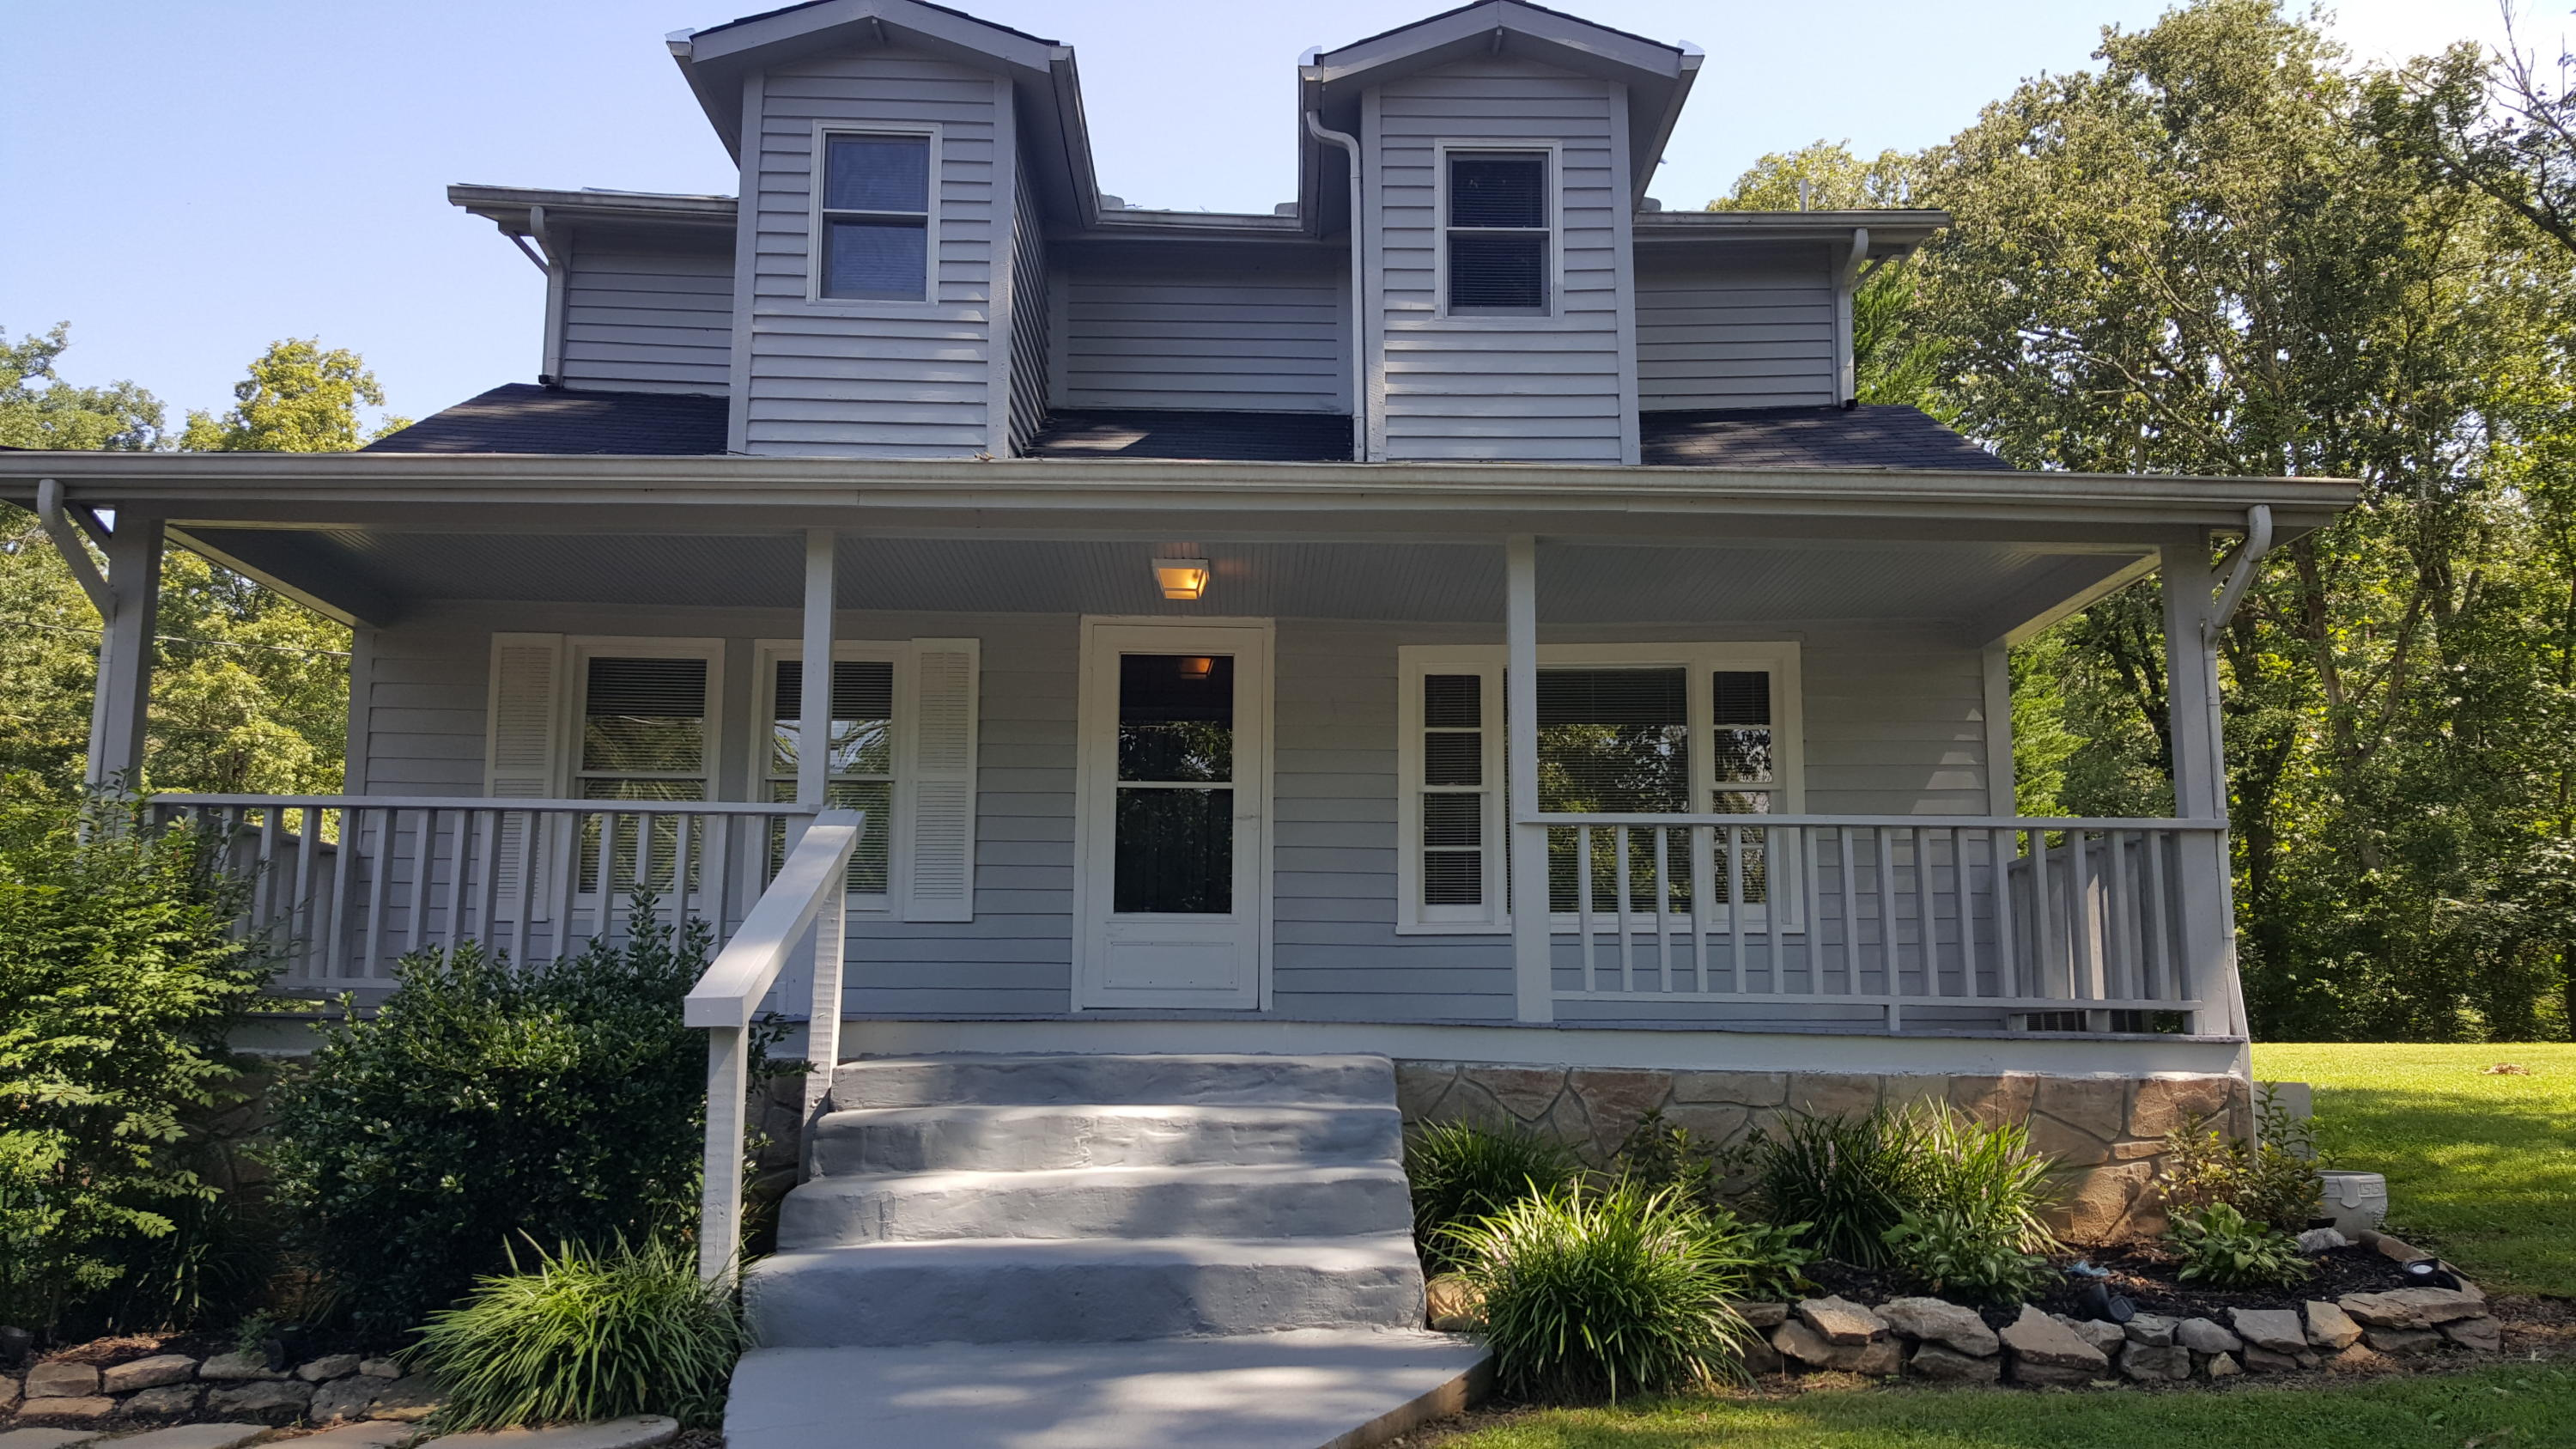 128 Molly Bright Rd, Knoxville, Tennessee 37924, 3 Bedrooms Bedrooms, ,1 BathroomBathrooms,Single Family,For Sale,Molly Bright,1089825